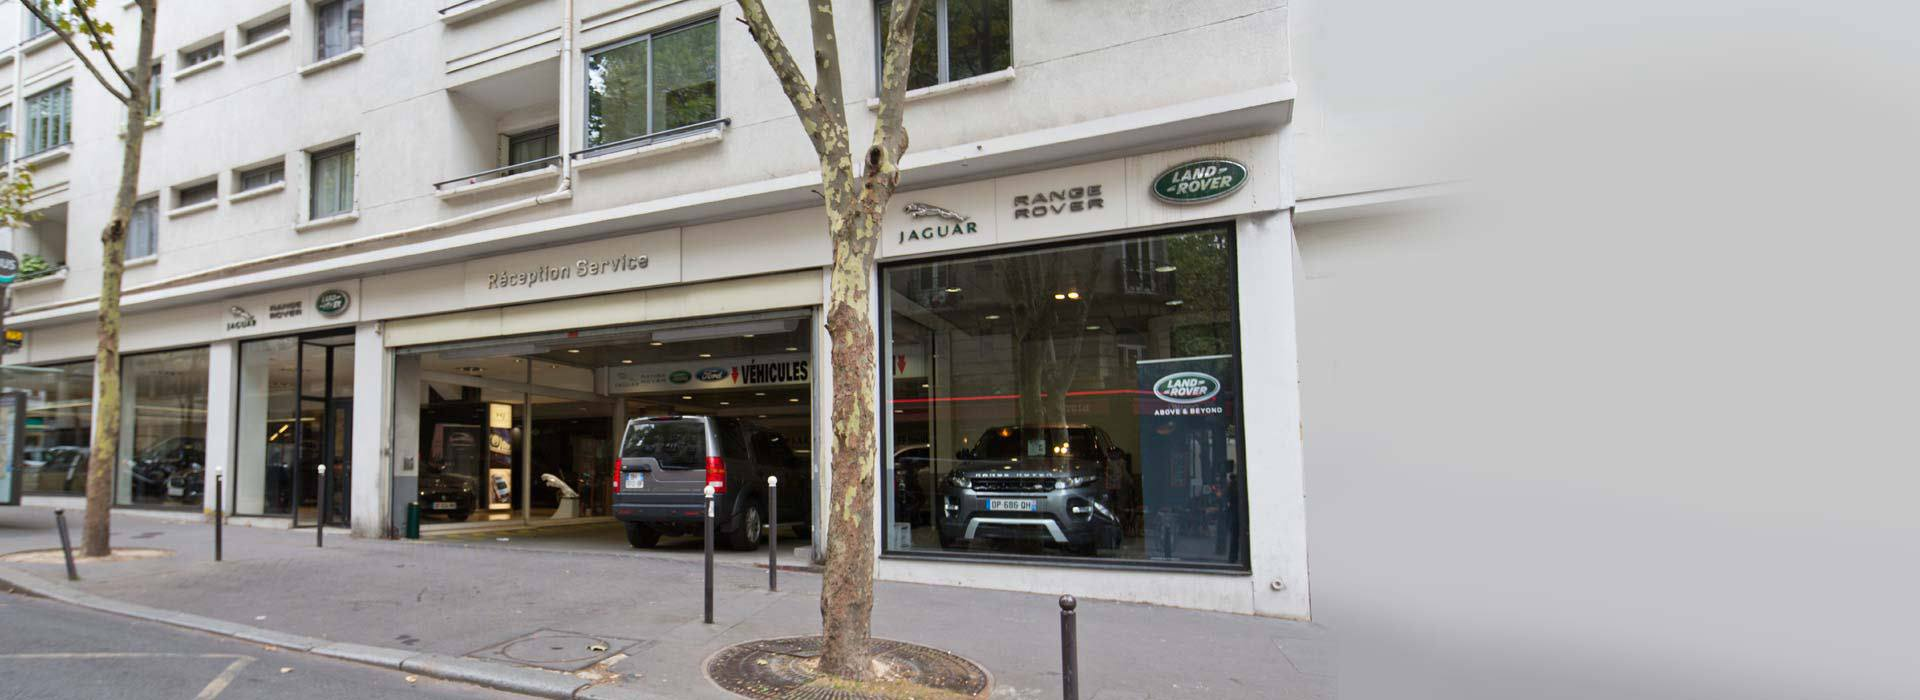 jaguar paris concessionnaire garage paris 75